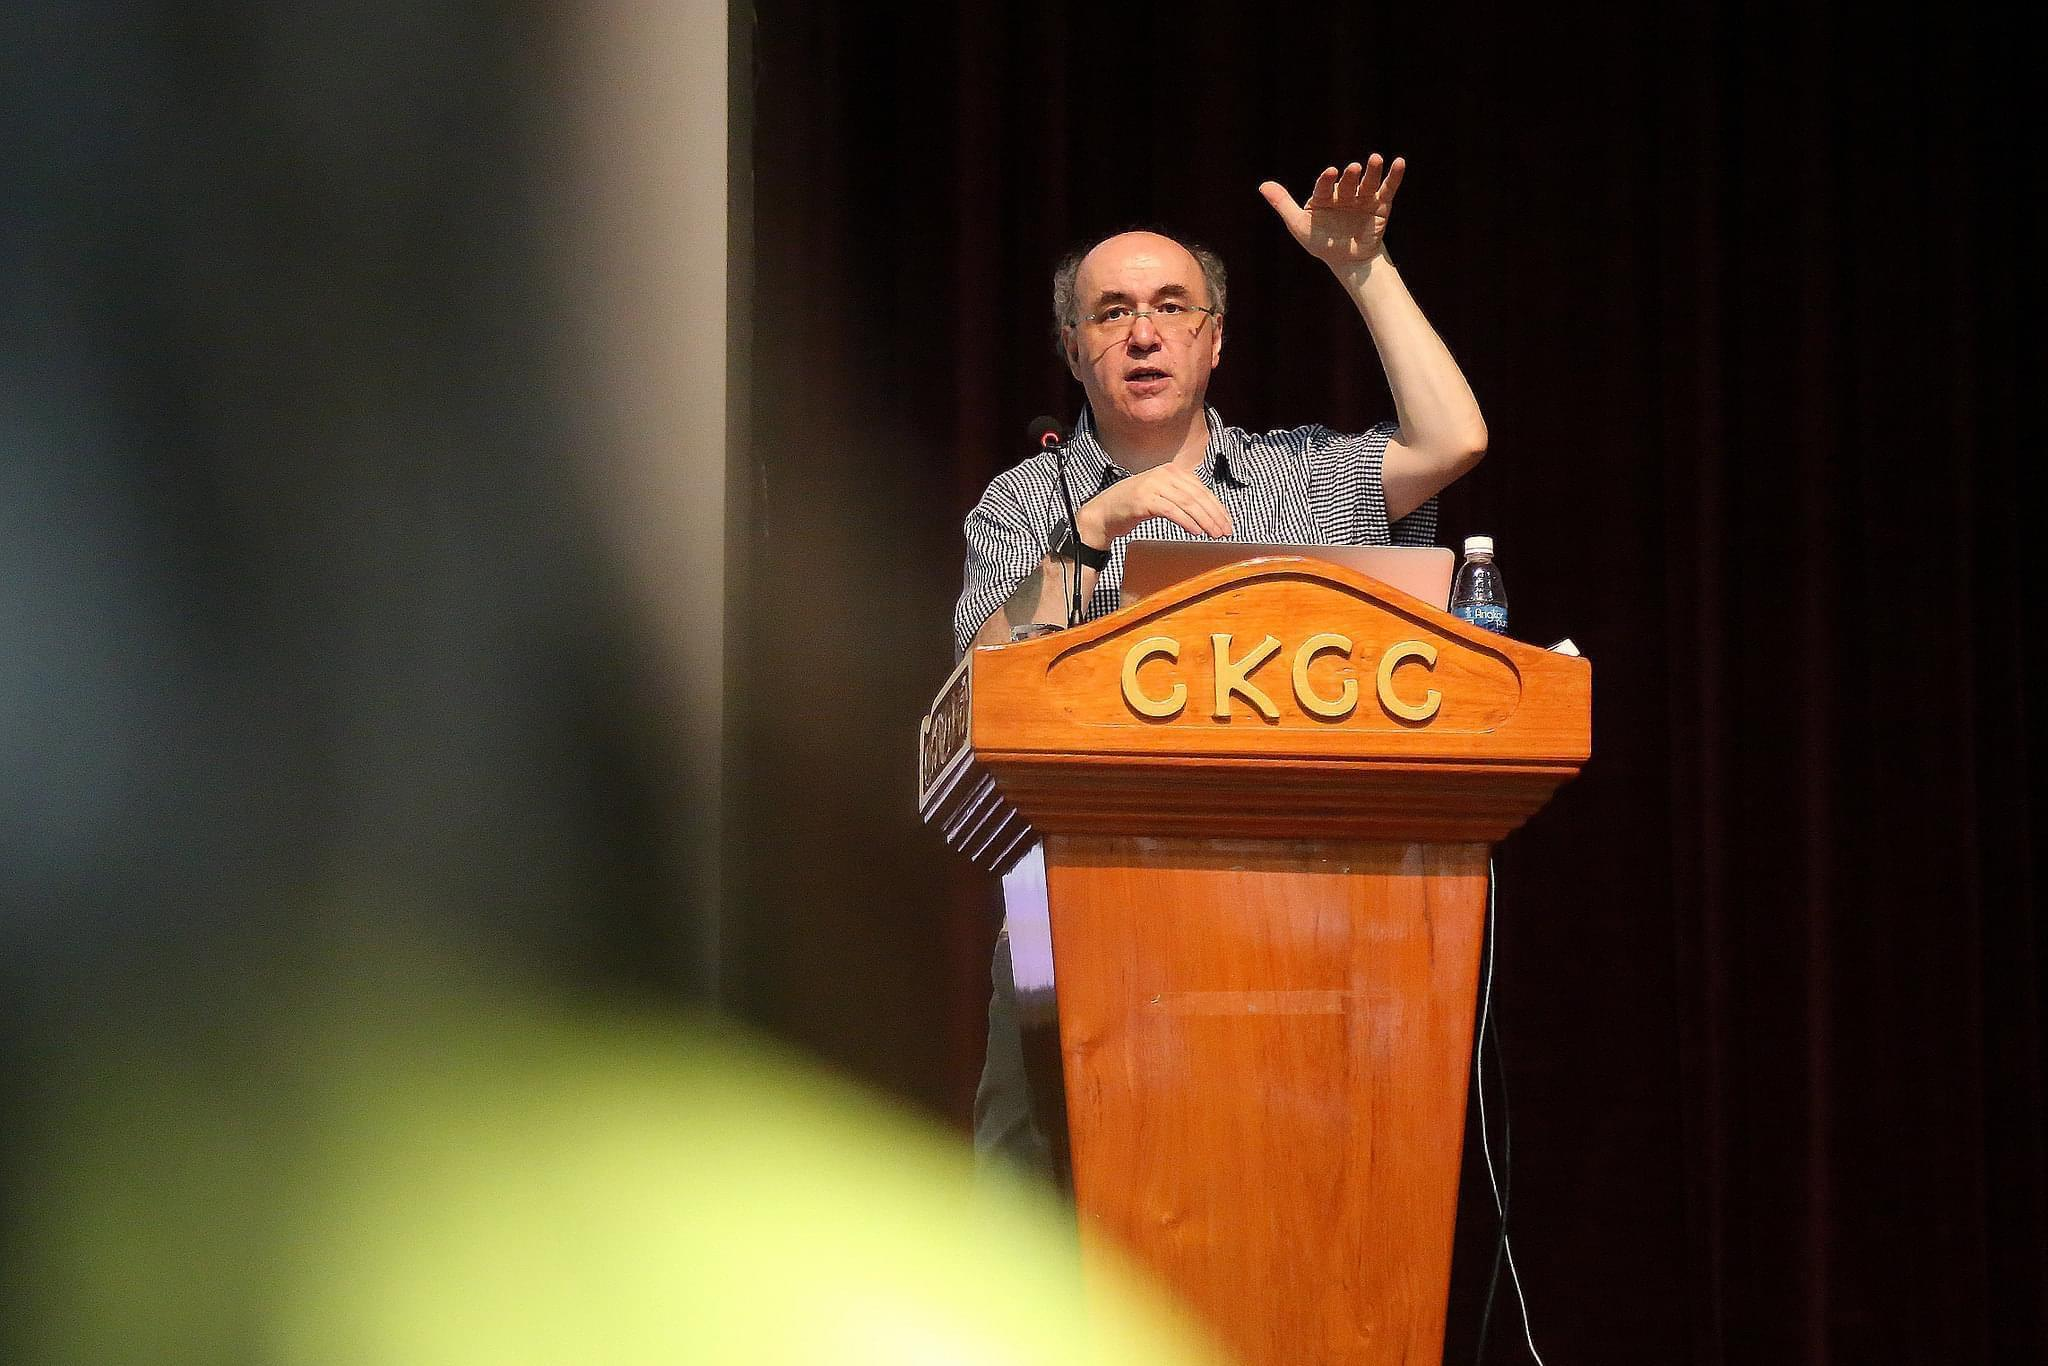 Stephen Wolfram delivering a lecture in 2015.